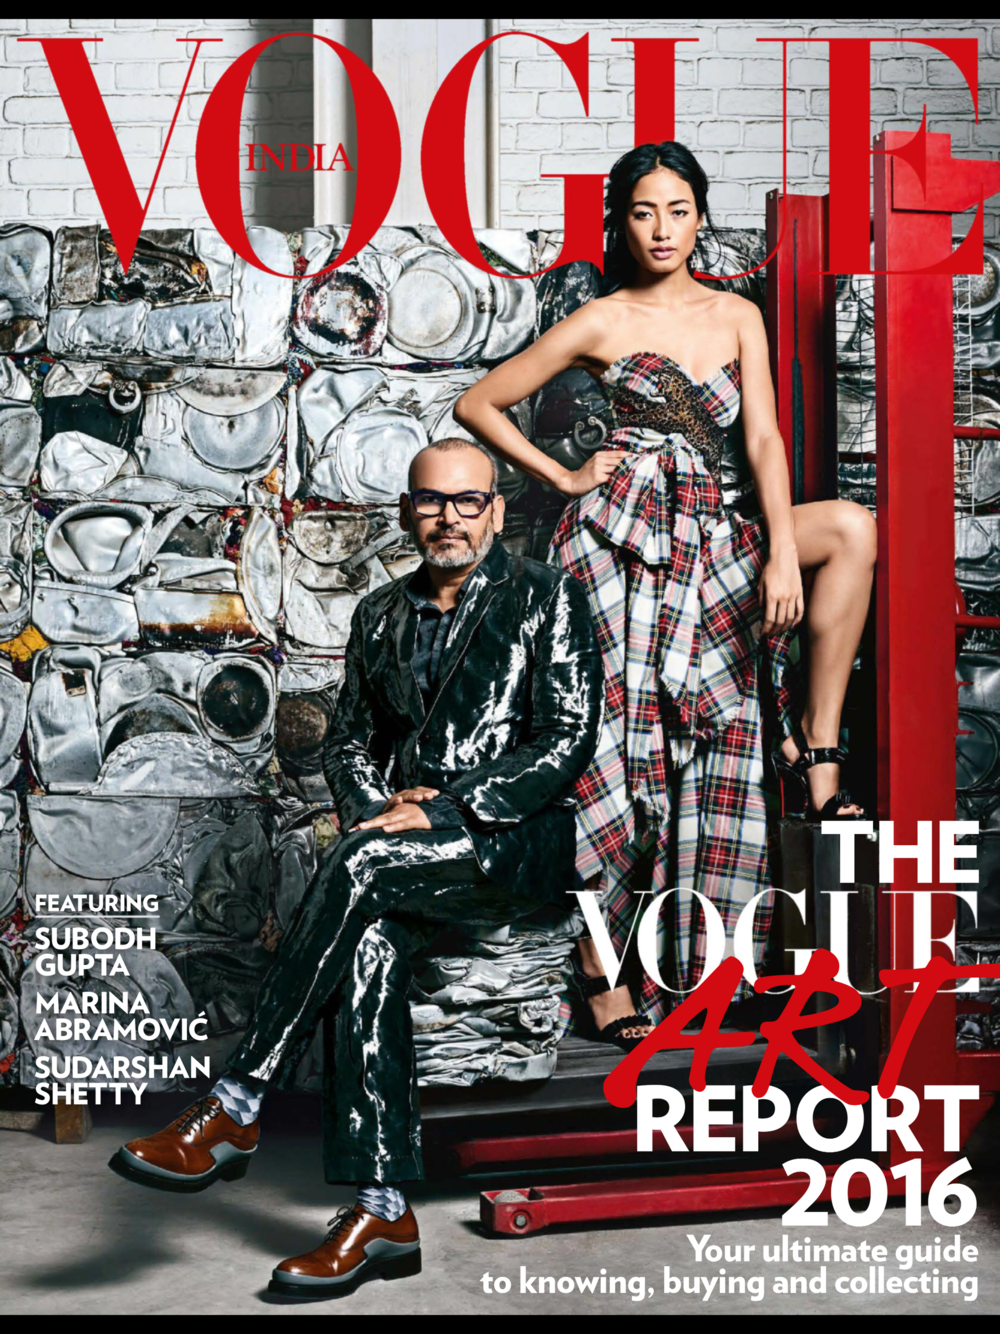 Based Upon_London_Art Design_Press_Vogue India